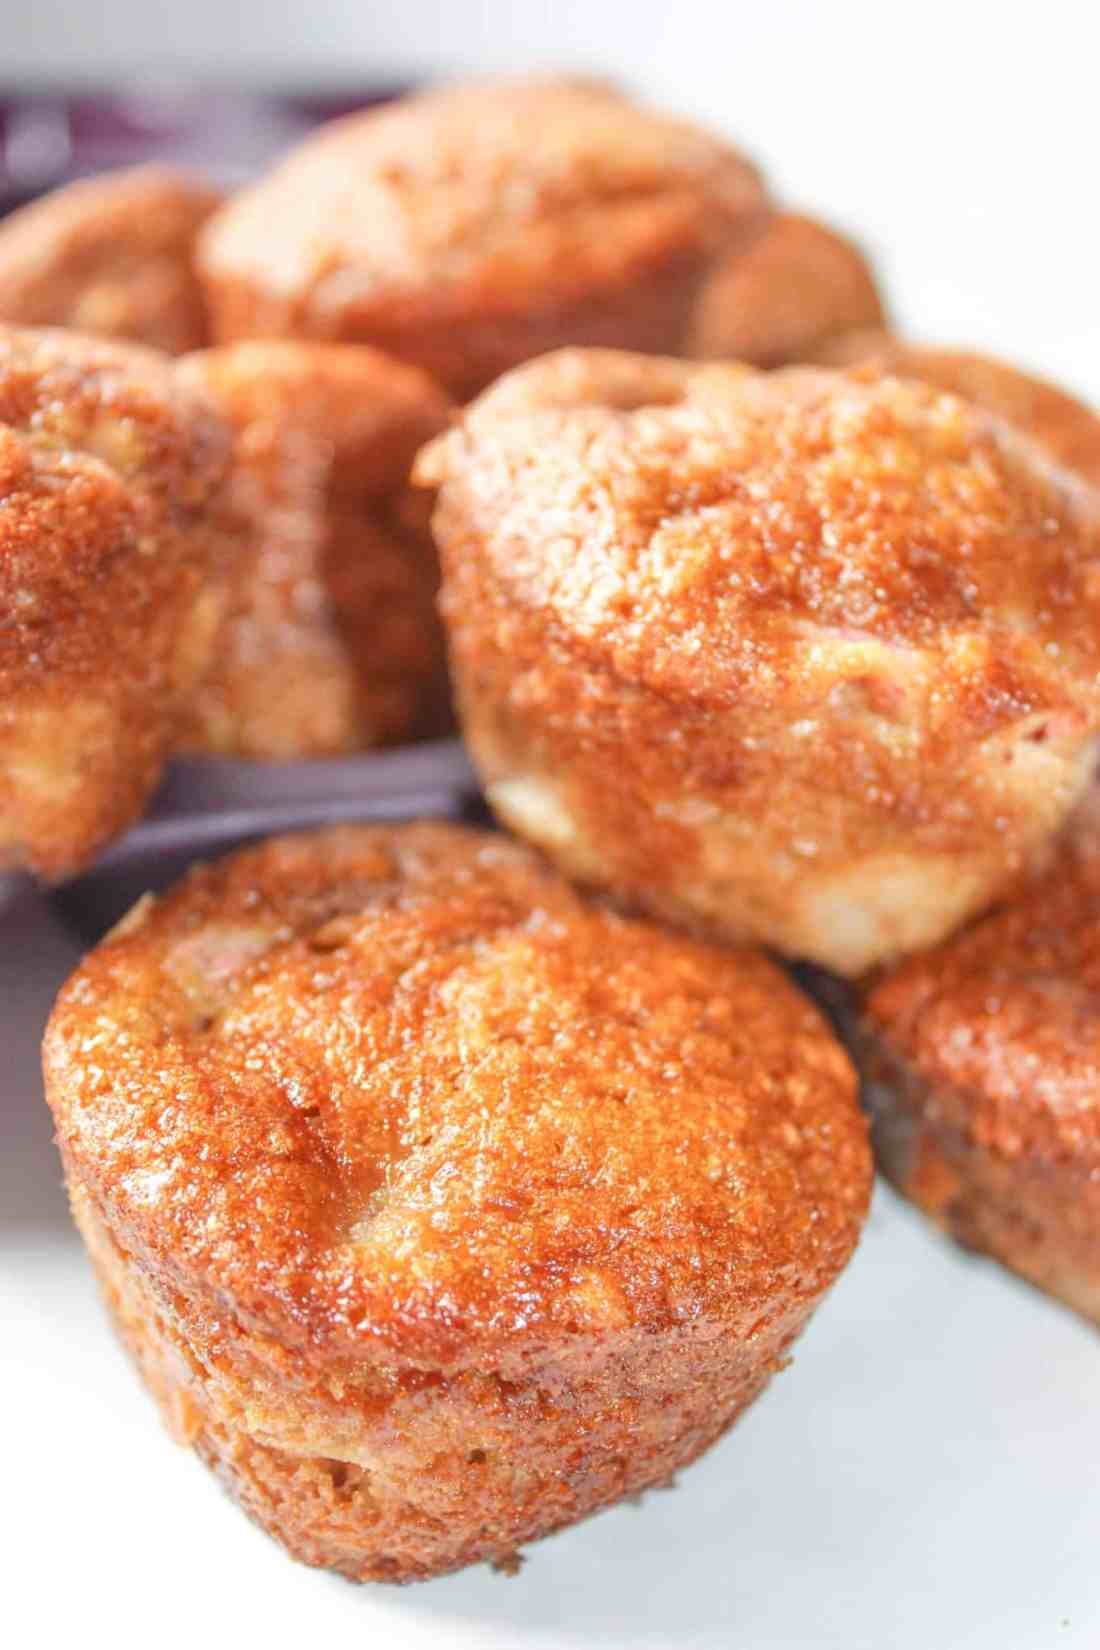 Gluten Free Rhubarb Muffins are a moist, tasty snack loaded with seasonal Rhubarb.  These gluten free muffins are great on their own or pair them with your favourite beverage.